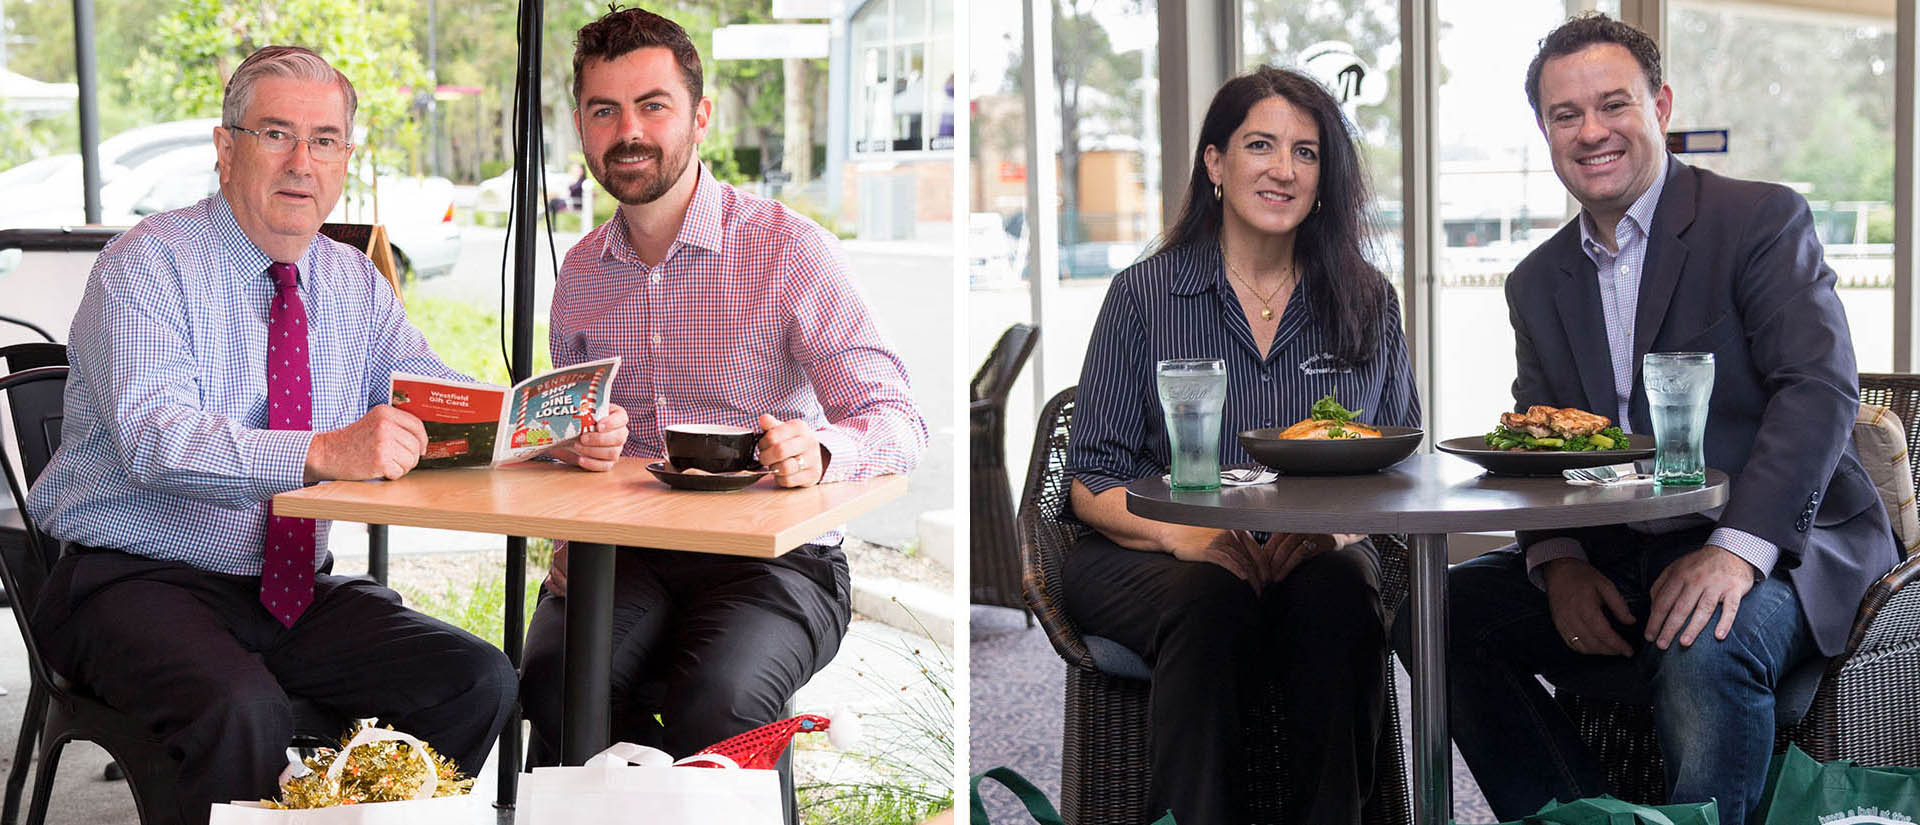 Penrith-CBD-Corp-Shop-Local-Business-growth2